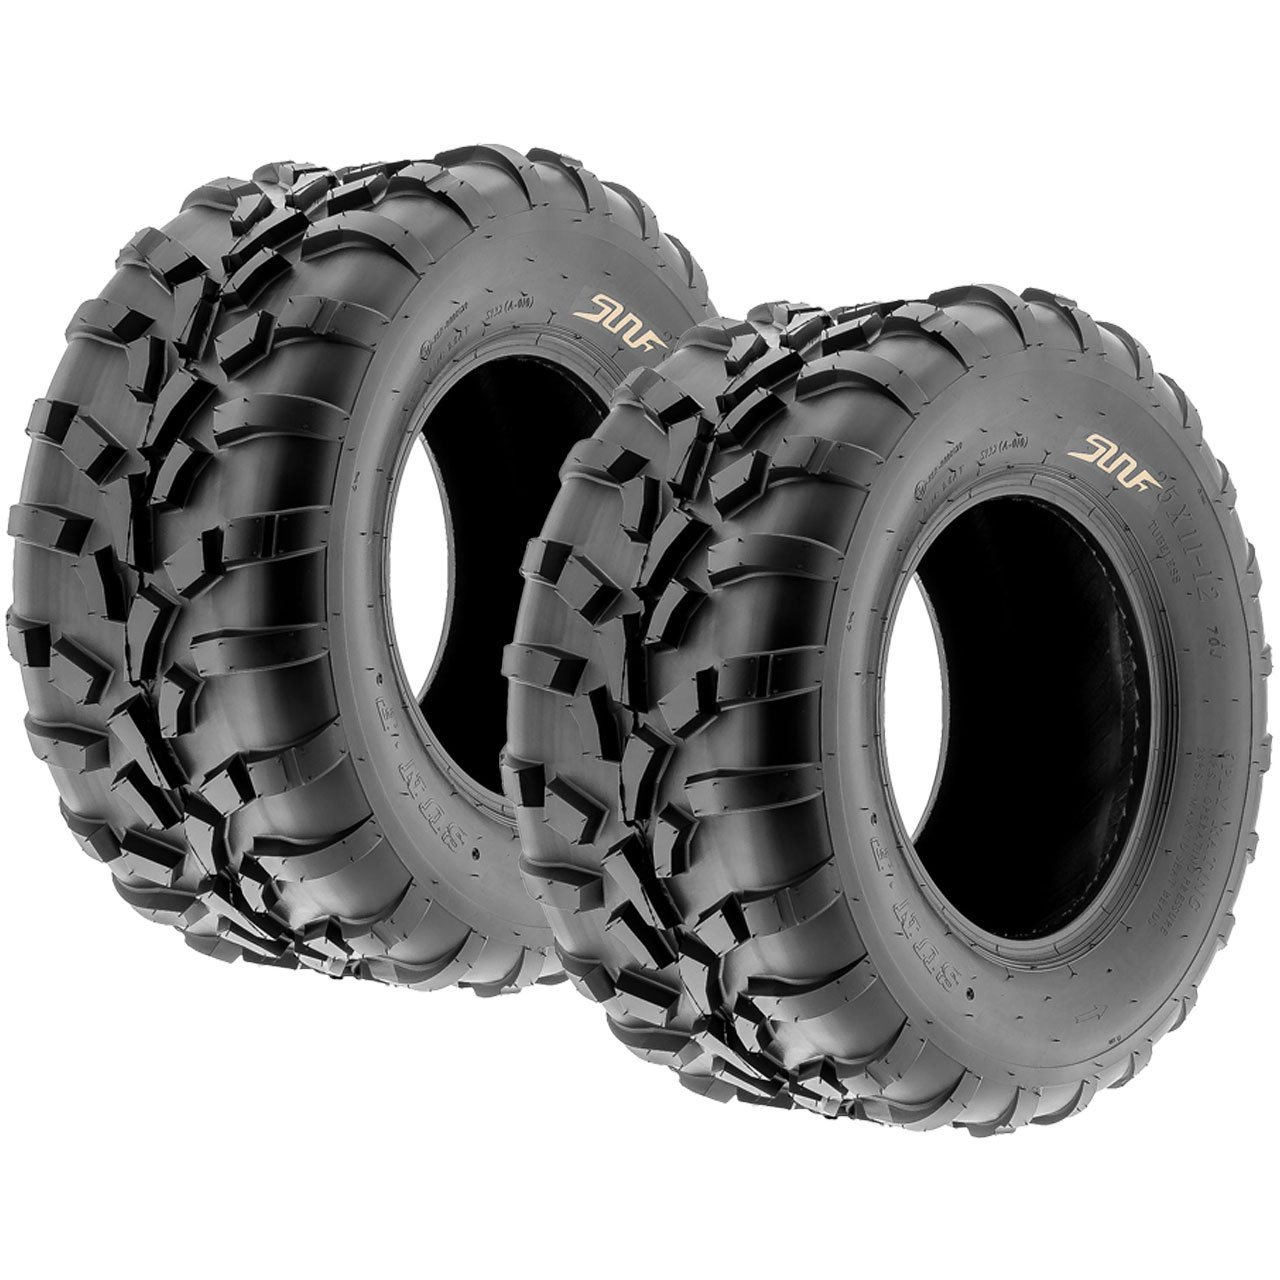 Pair of 2 SunF 25x11-12 AT-XC ATV/UTV Off-Road Tires , 6PR , Directional Knobby Tread | A010